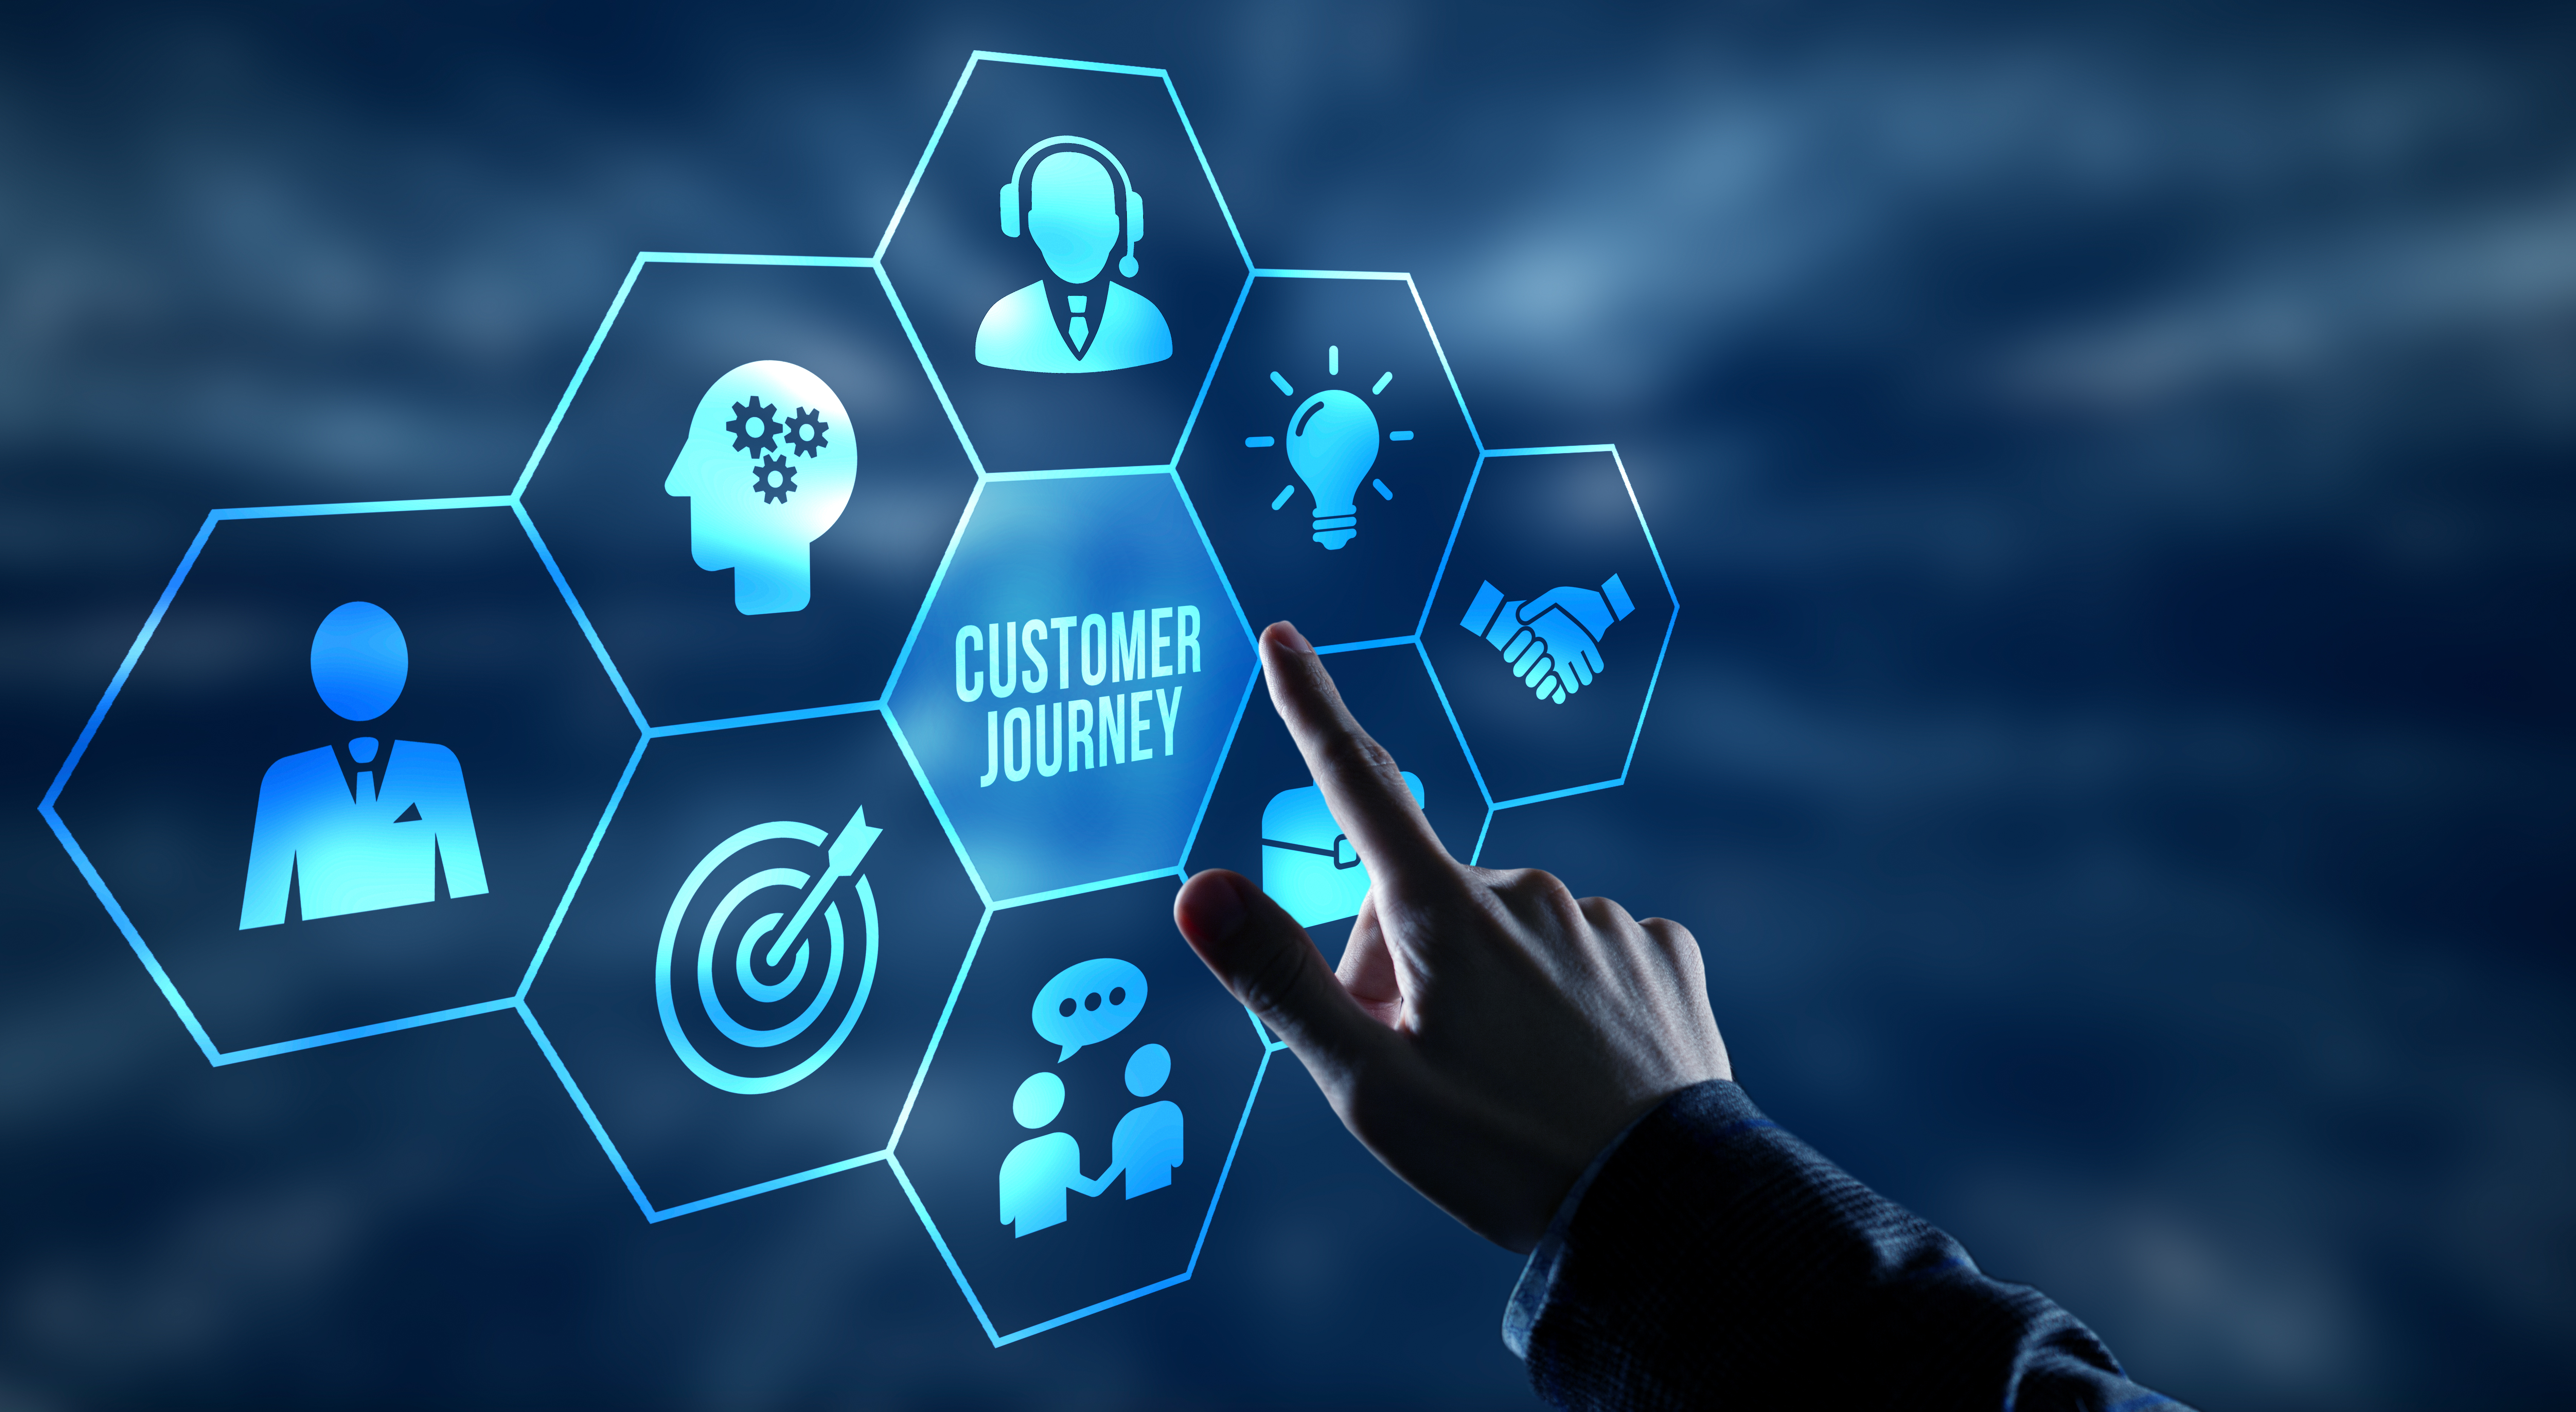 How-to Guide on Mapping the Customers Journey Through Your Retail Store